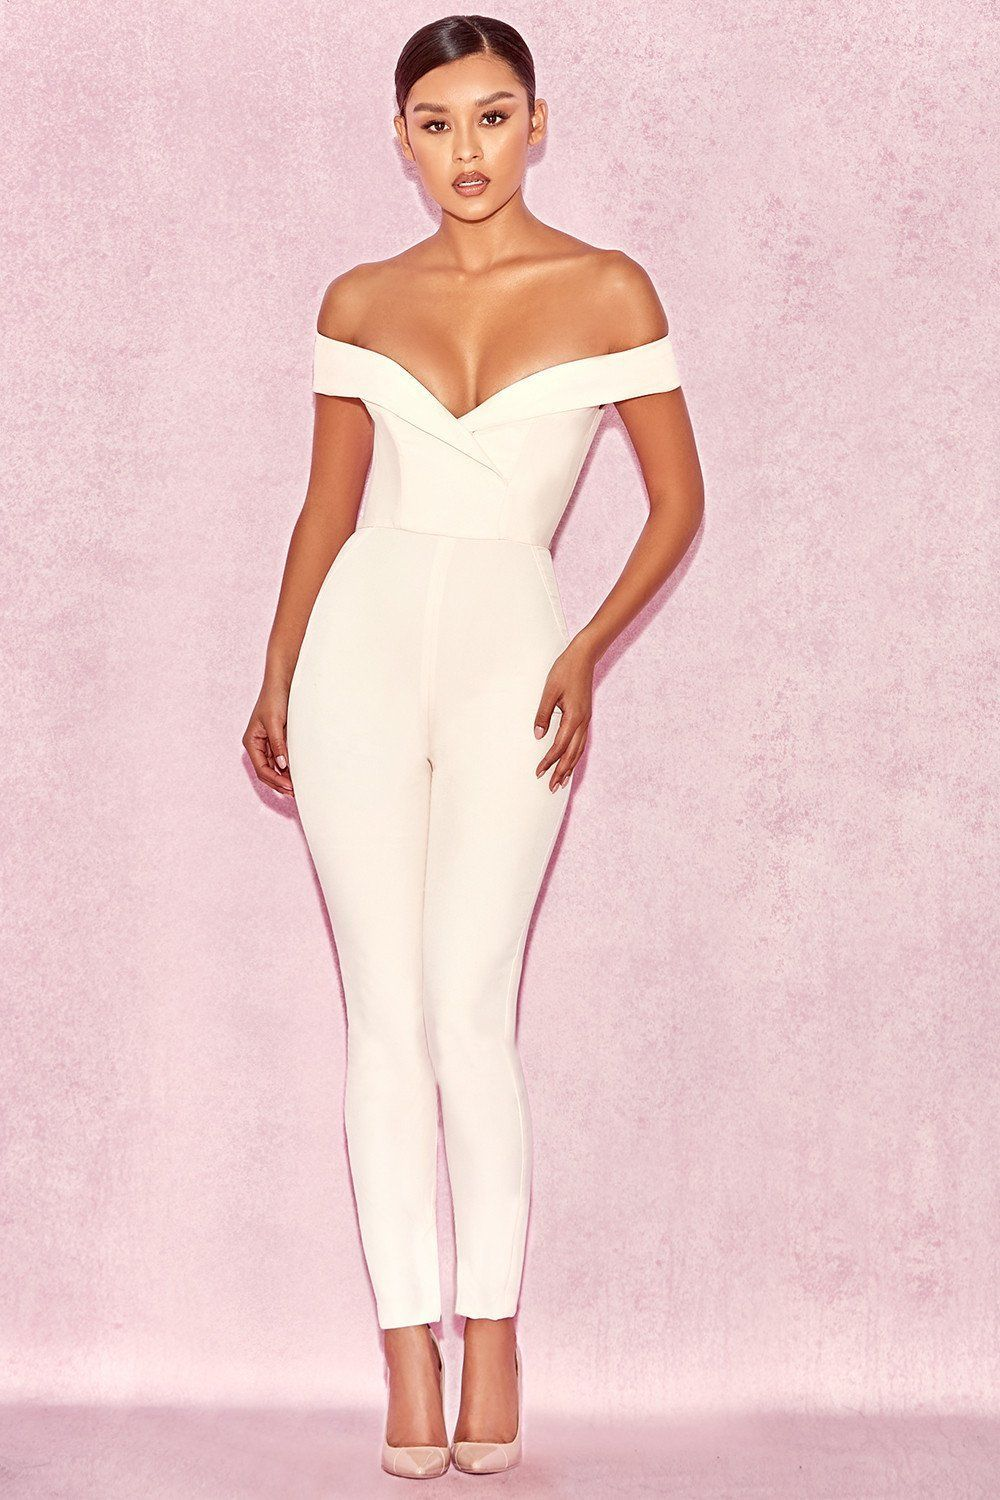 fabeaf2fa120 Your curves deserve this ultra elegant white jumpsuit. Featuring an off the  shoulder bust